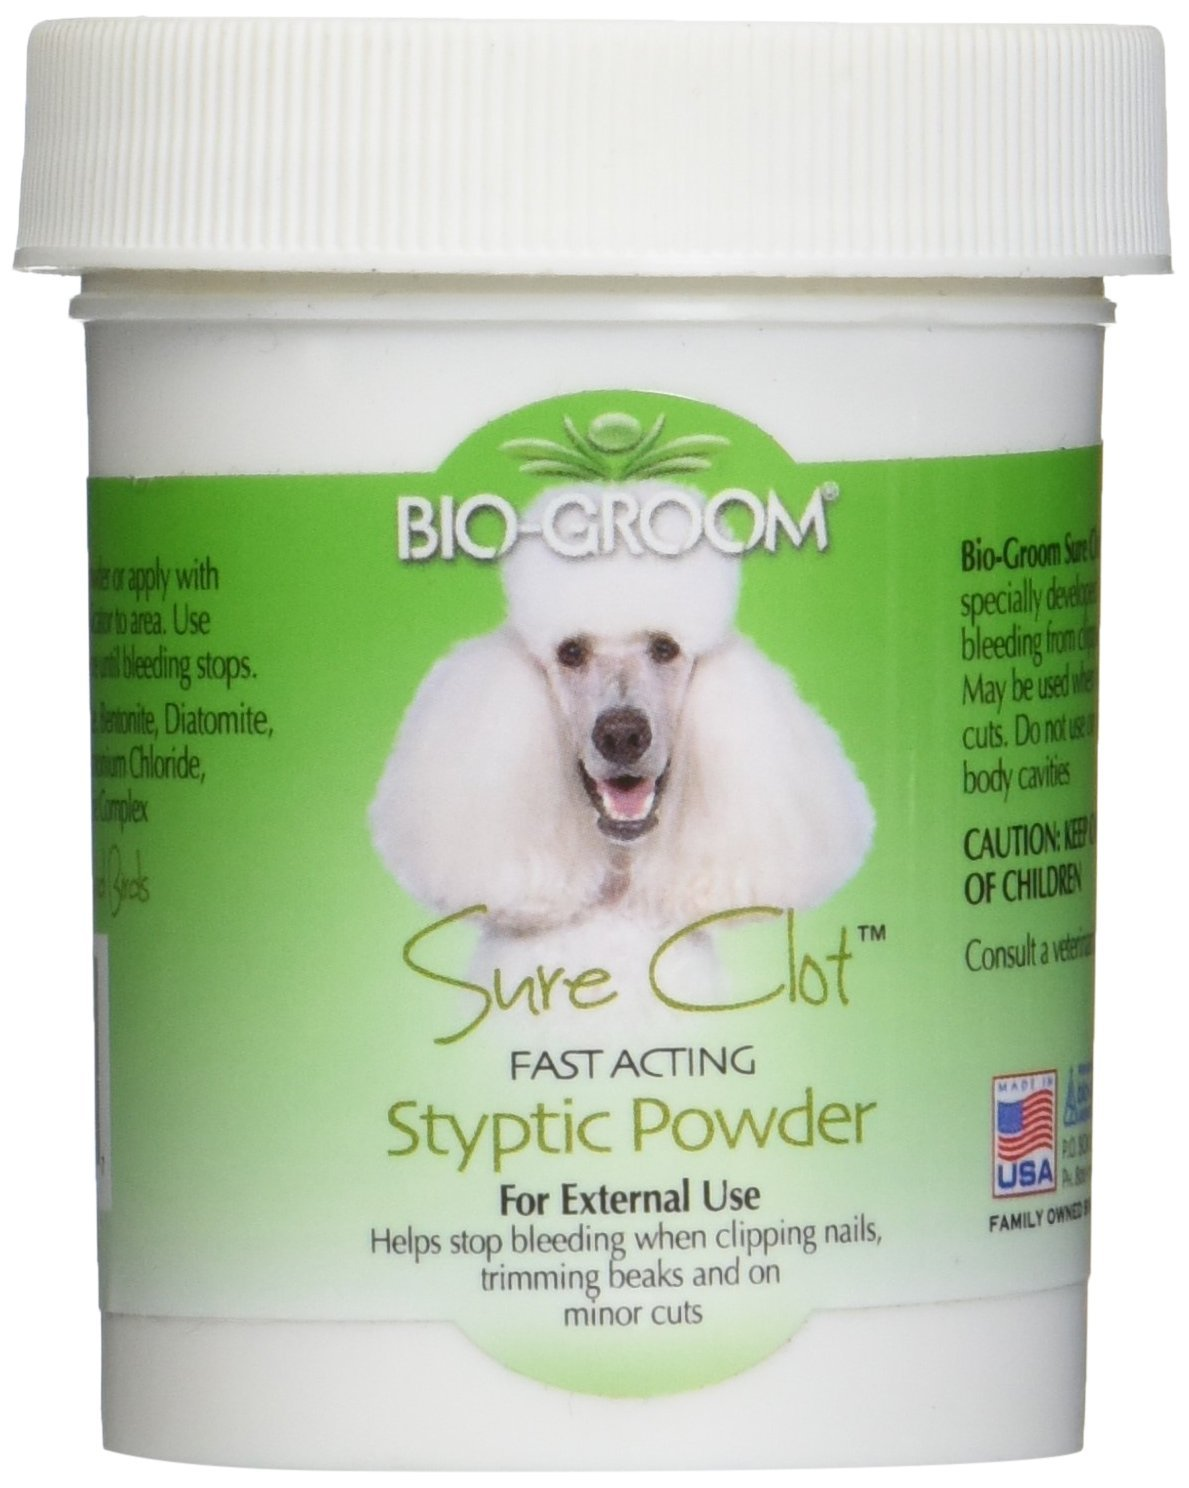 Bio-Groom Sure Clot Styptic Powder 1.5 Oz